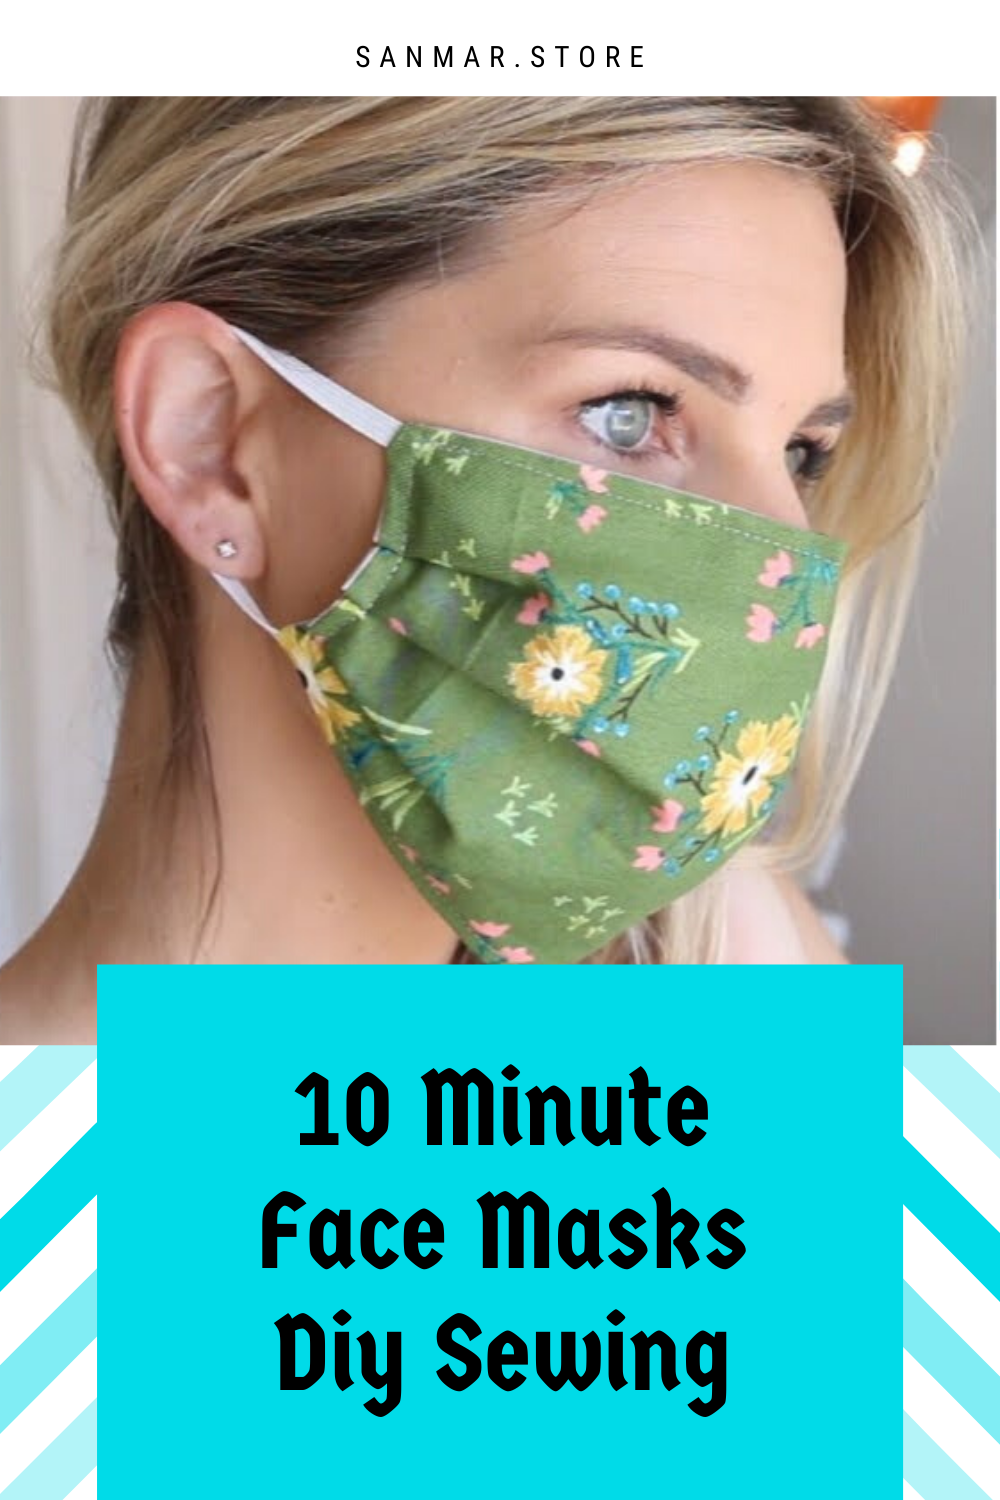 DIY Face Mask with Elastic in 10 minutes - Sewing Tutorial - Sanmar